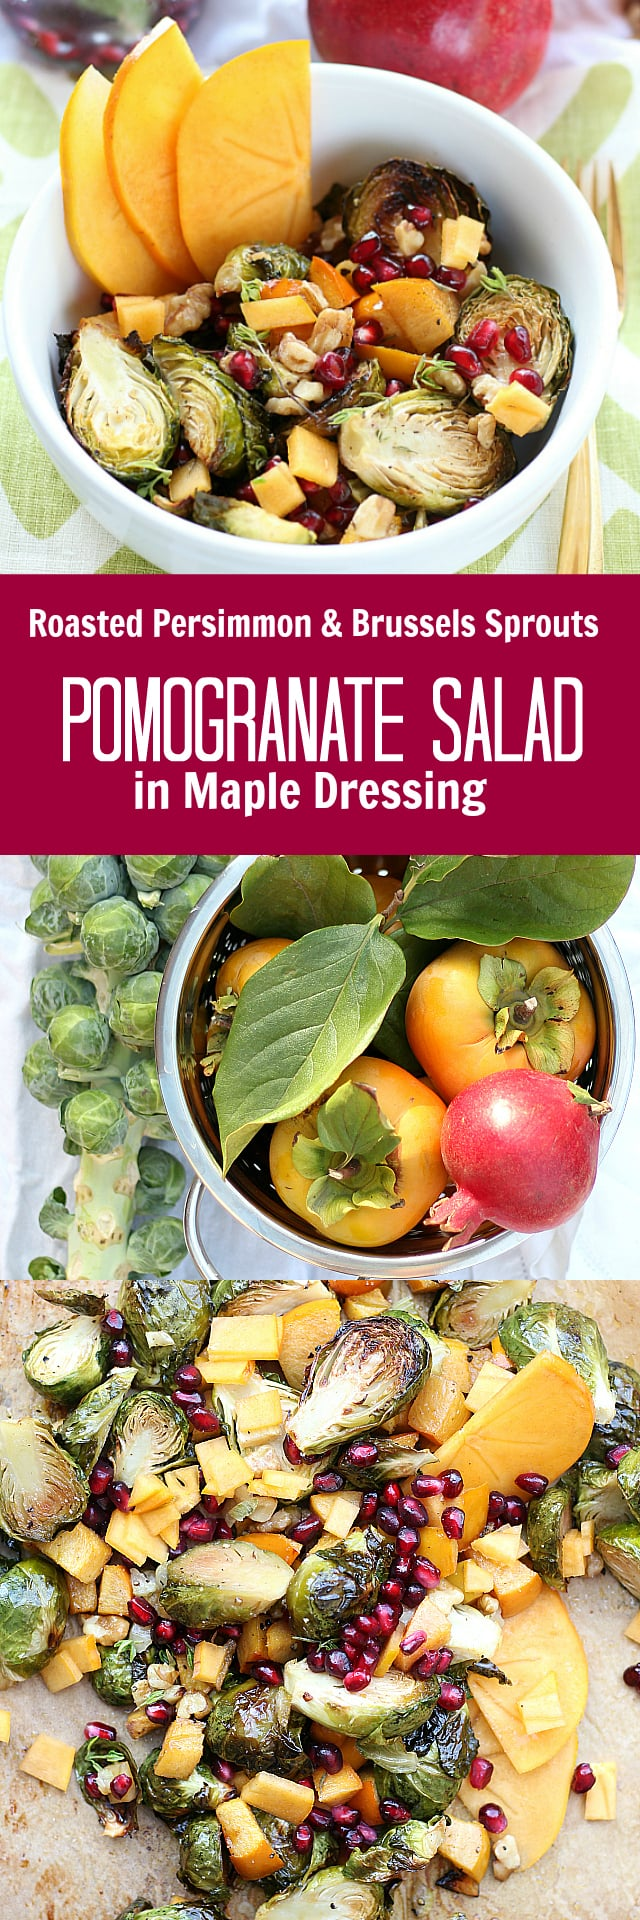 Pomegranate Salad! Roasted with veggies and tossed with Maple Dressing.